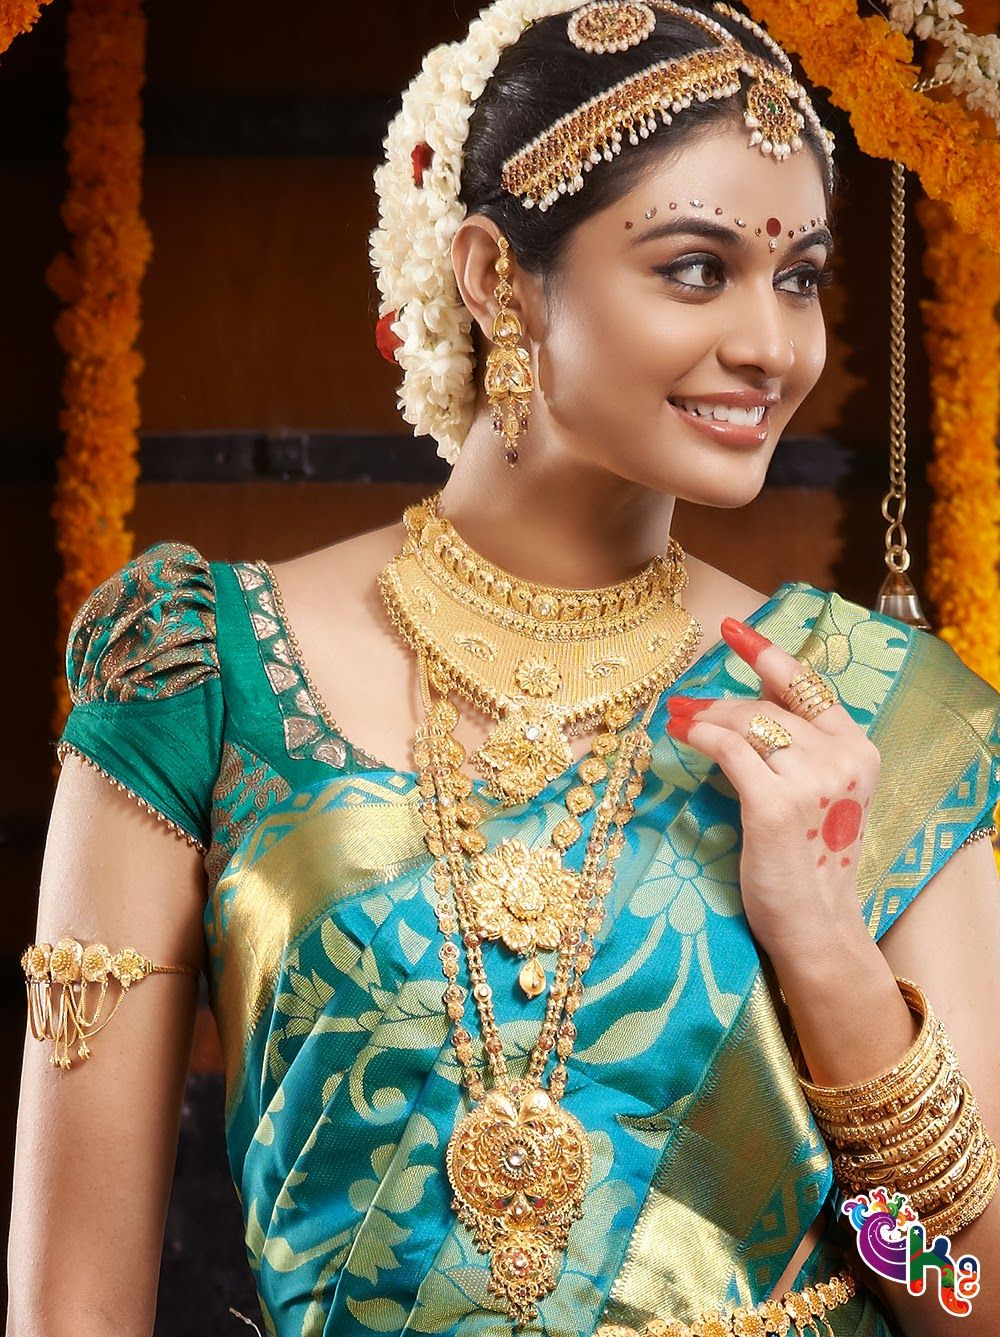 Pin by kashinath on Stuff to Buy | Pinterest | South indian bride ...